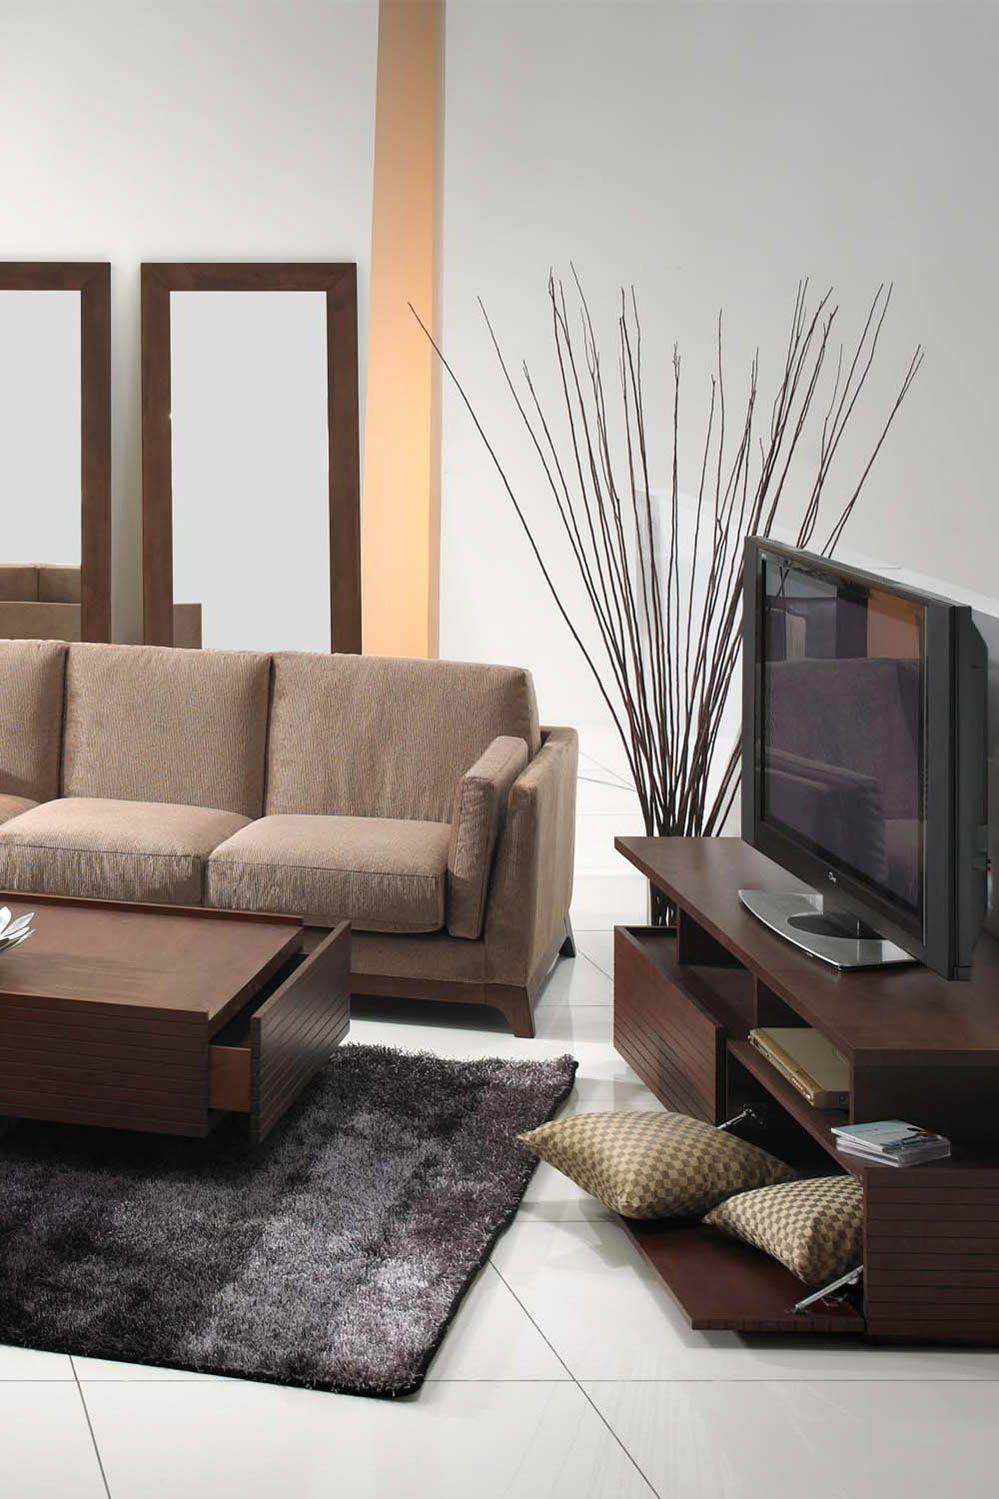 Charmant Decorate Your Home With Quality Furniture At Everyday Low Prices.